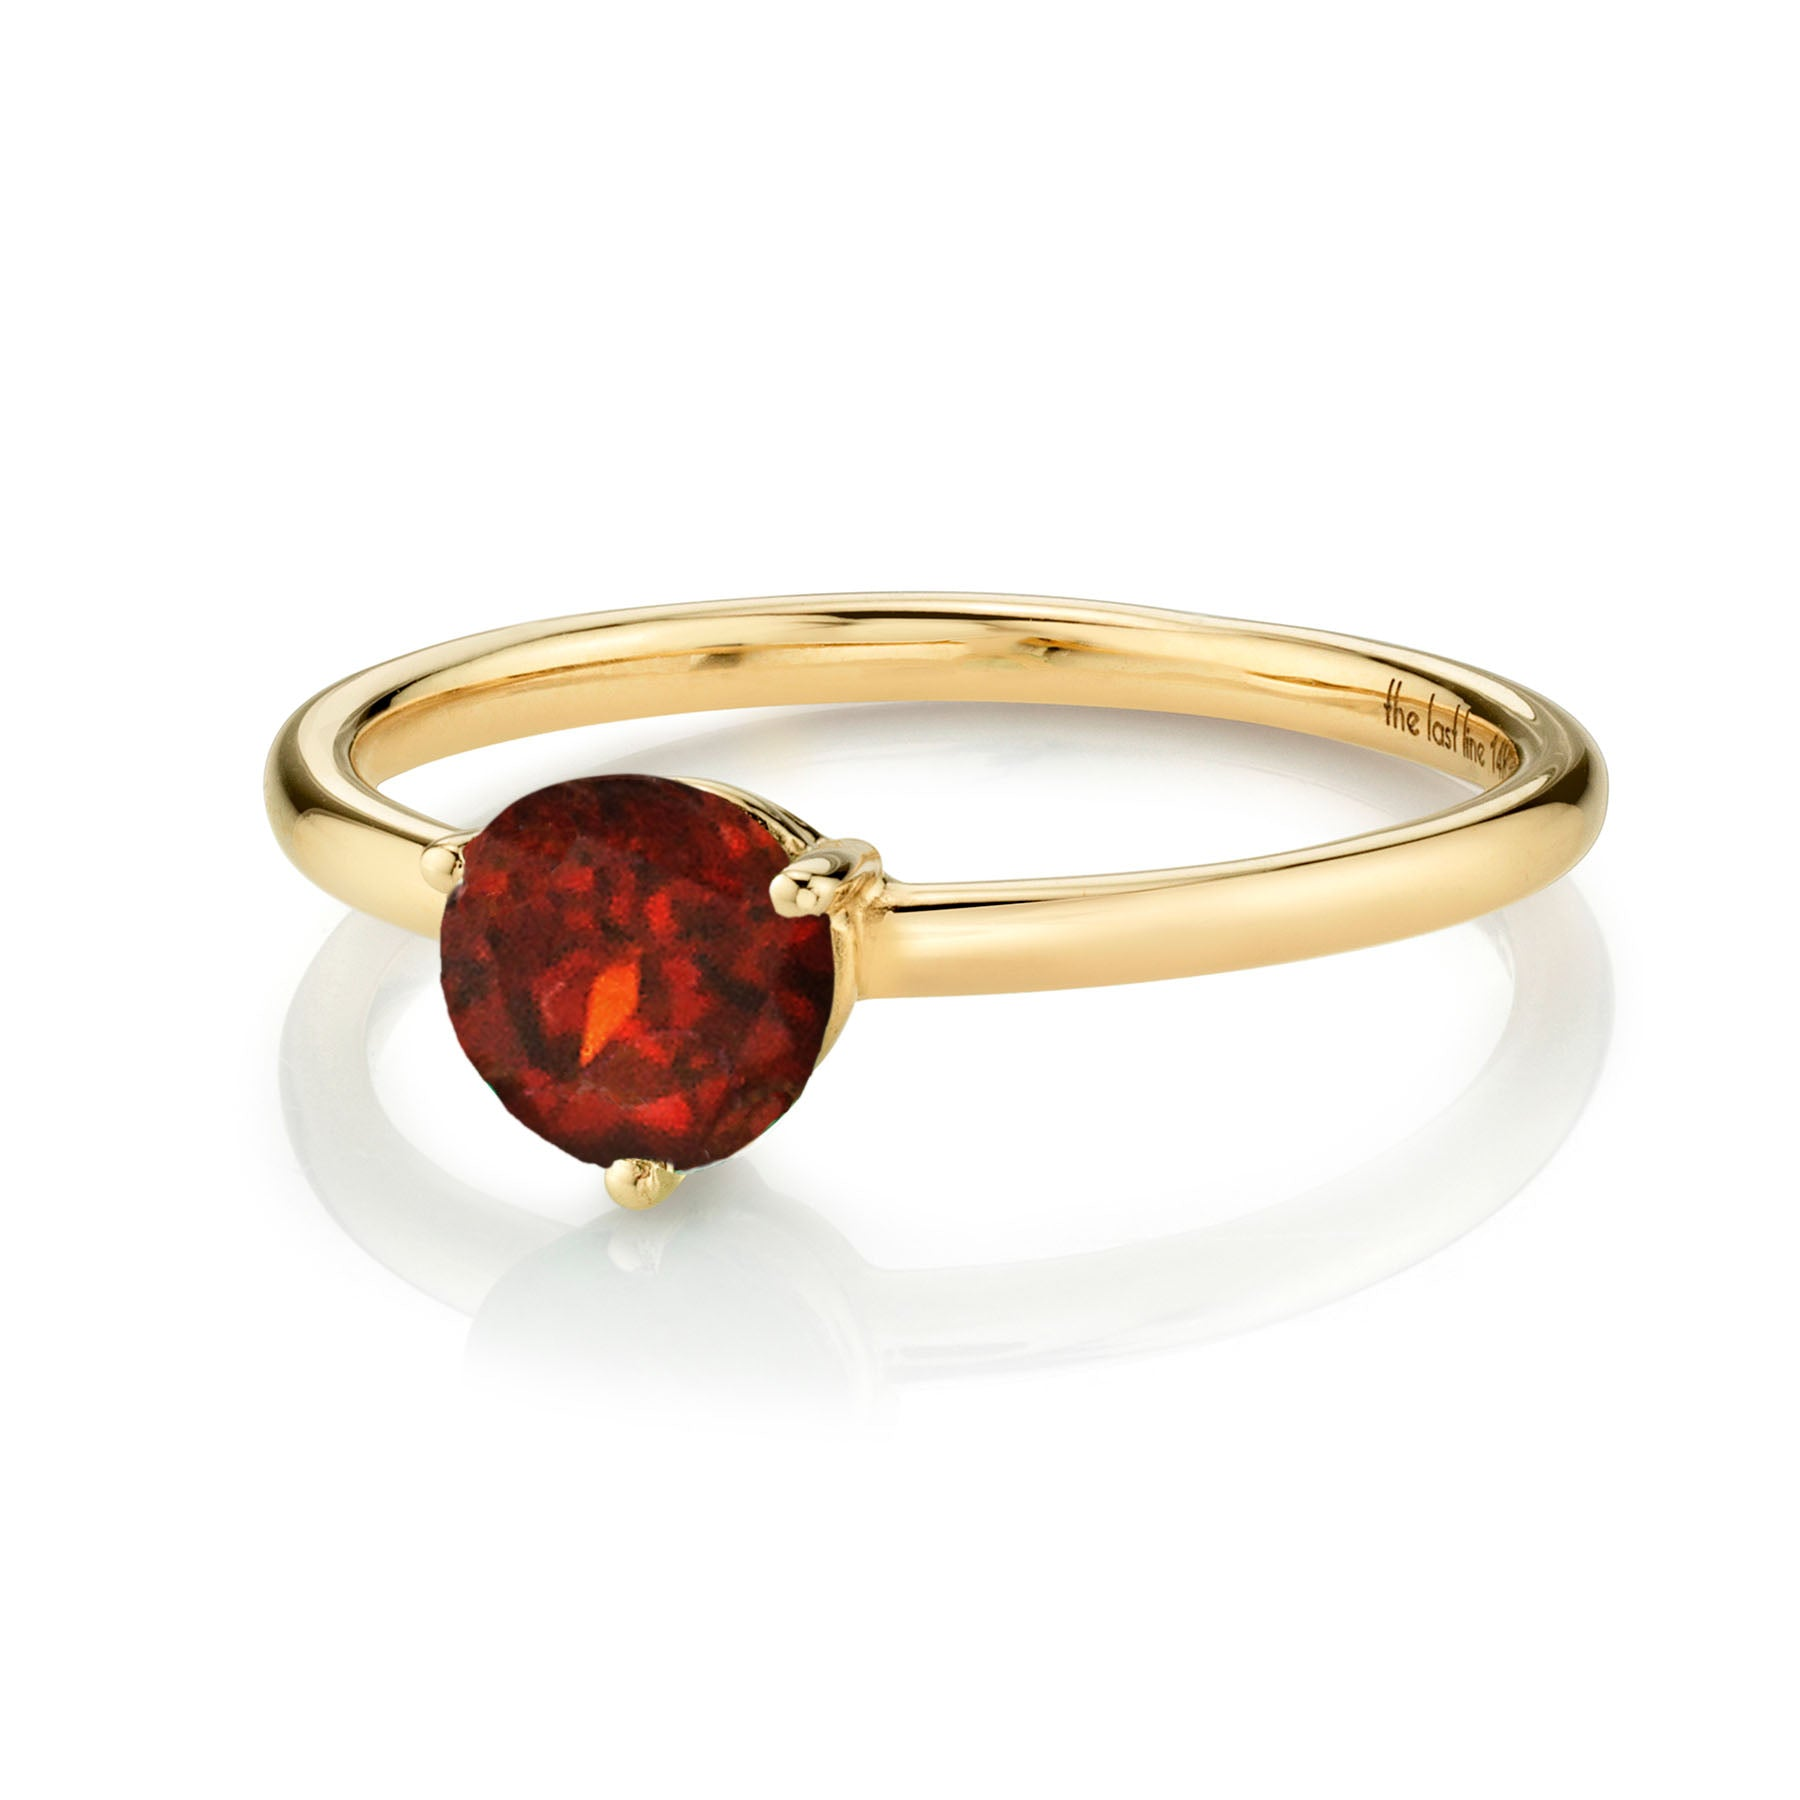 LARGE SOLITAIRE GARNET RING